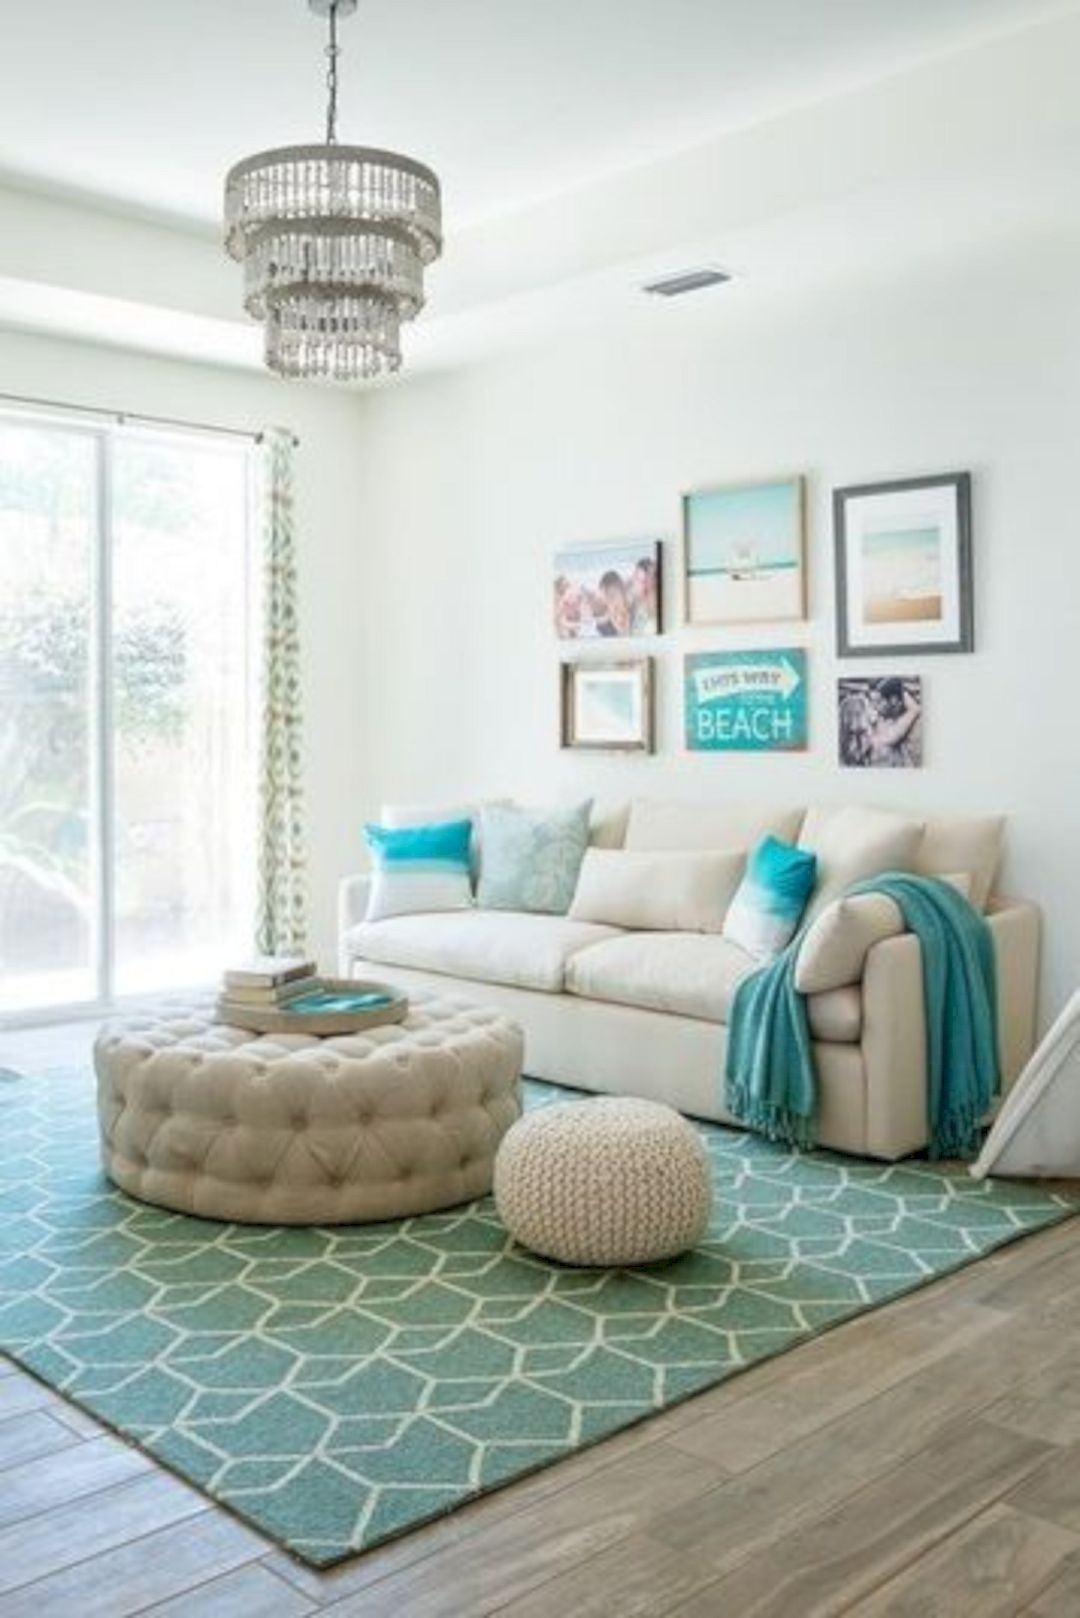 15 Impressive Wall Decorating Ideas For Your Living Room B